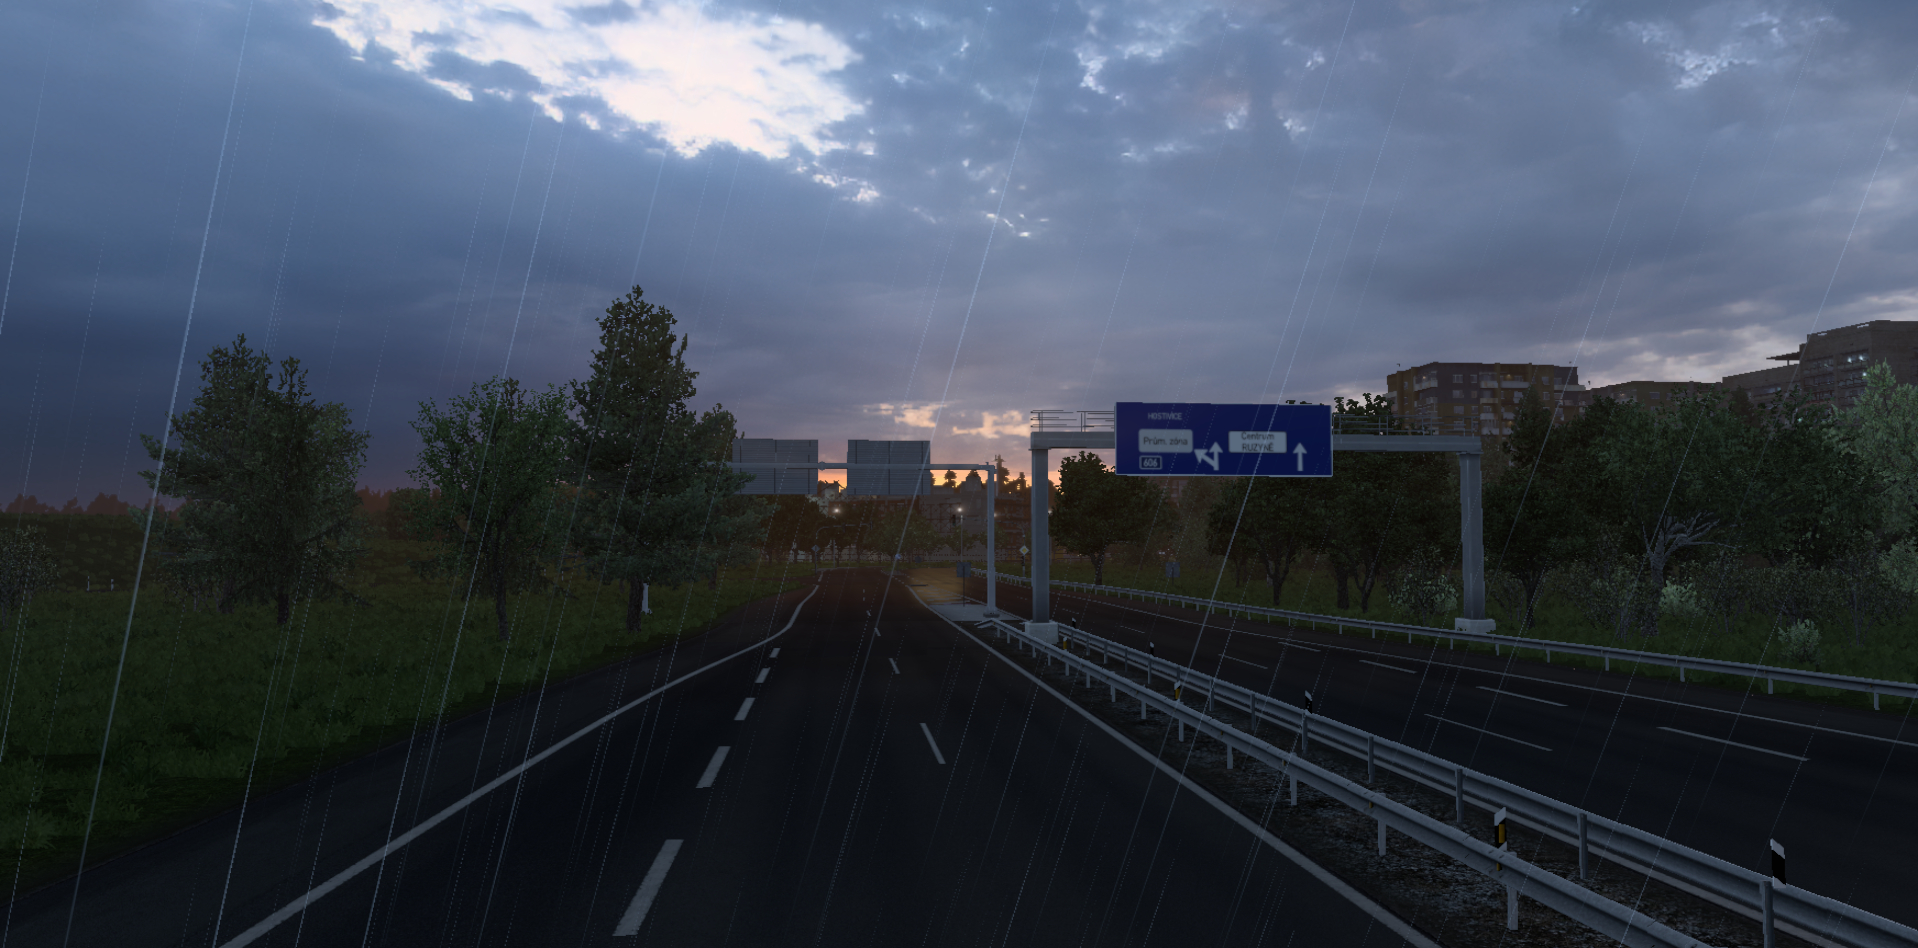 ets2_20210804_144245_00.png